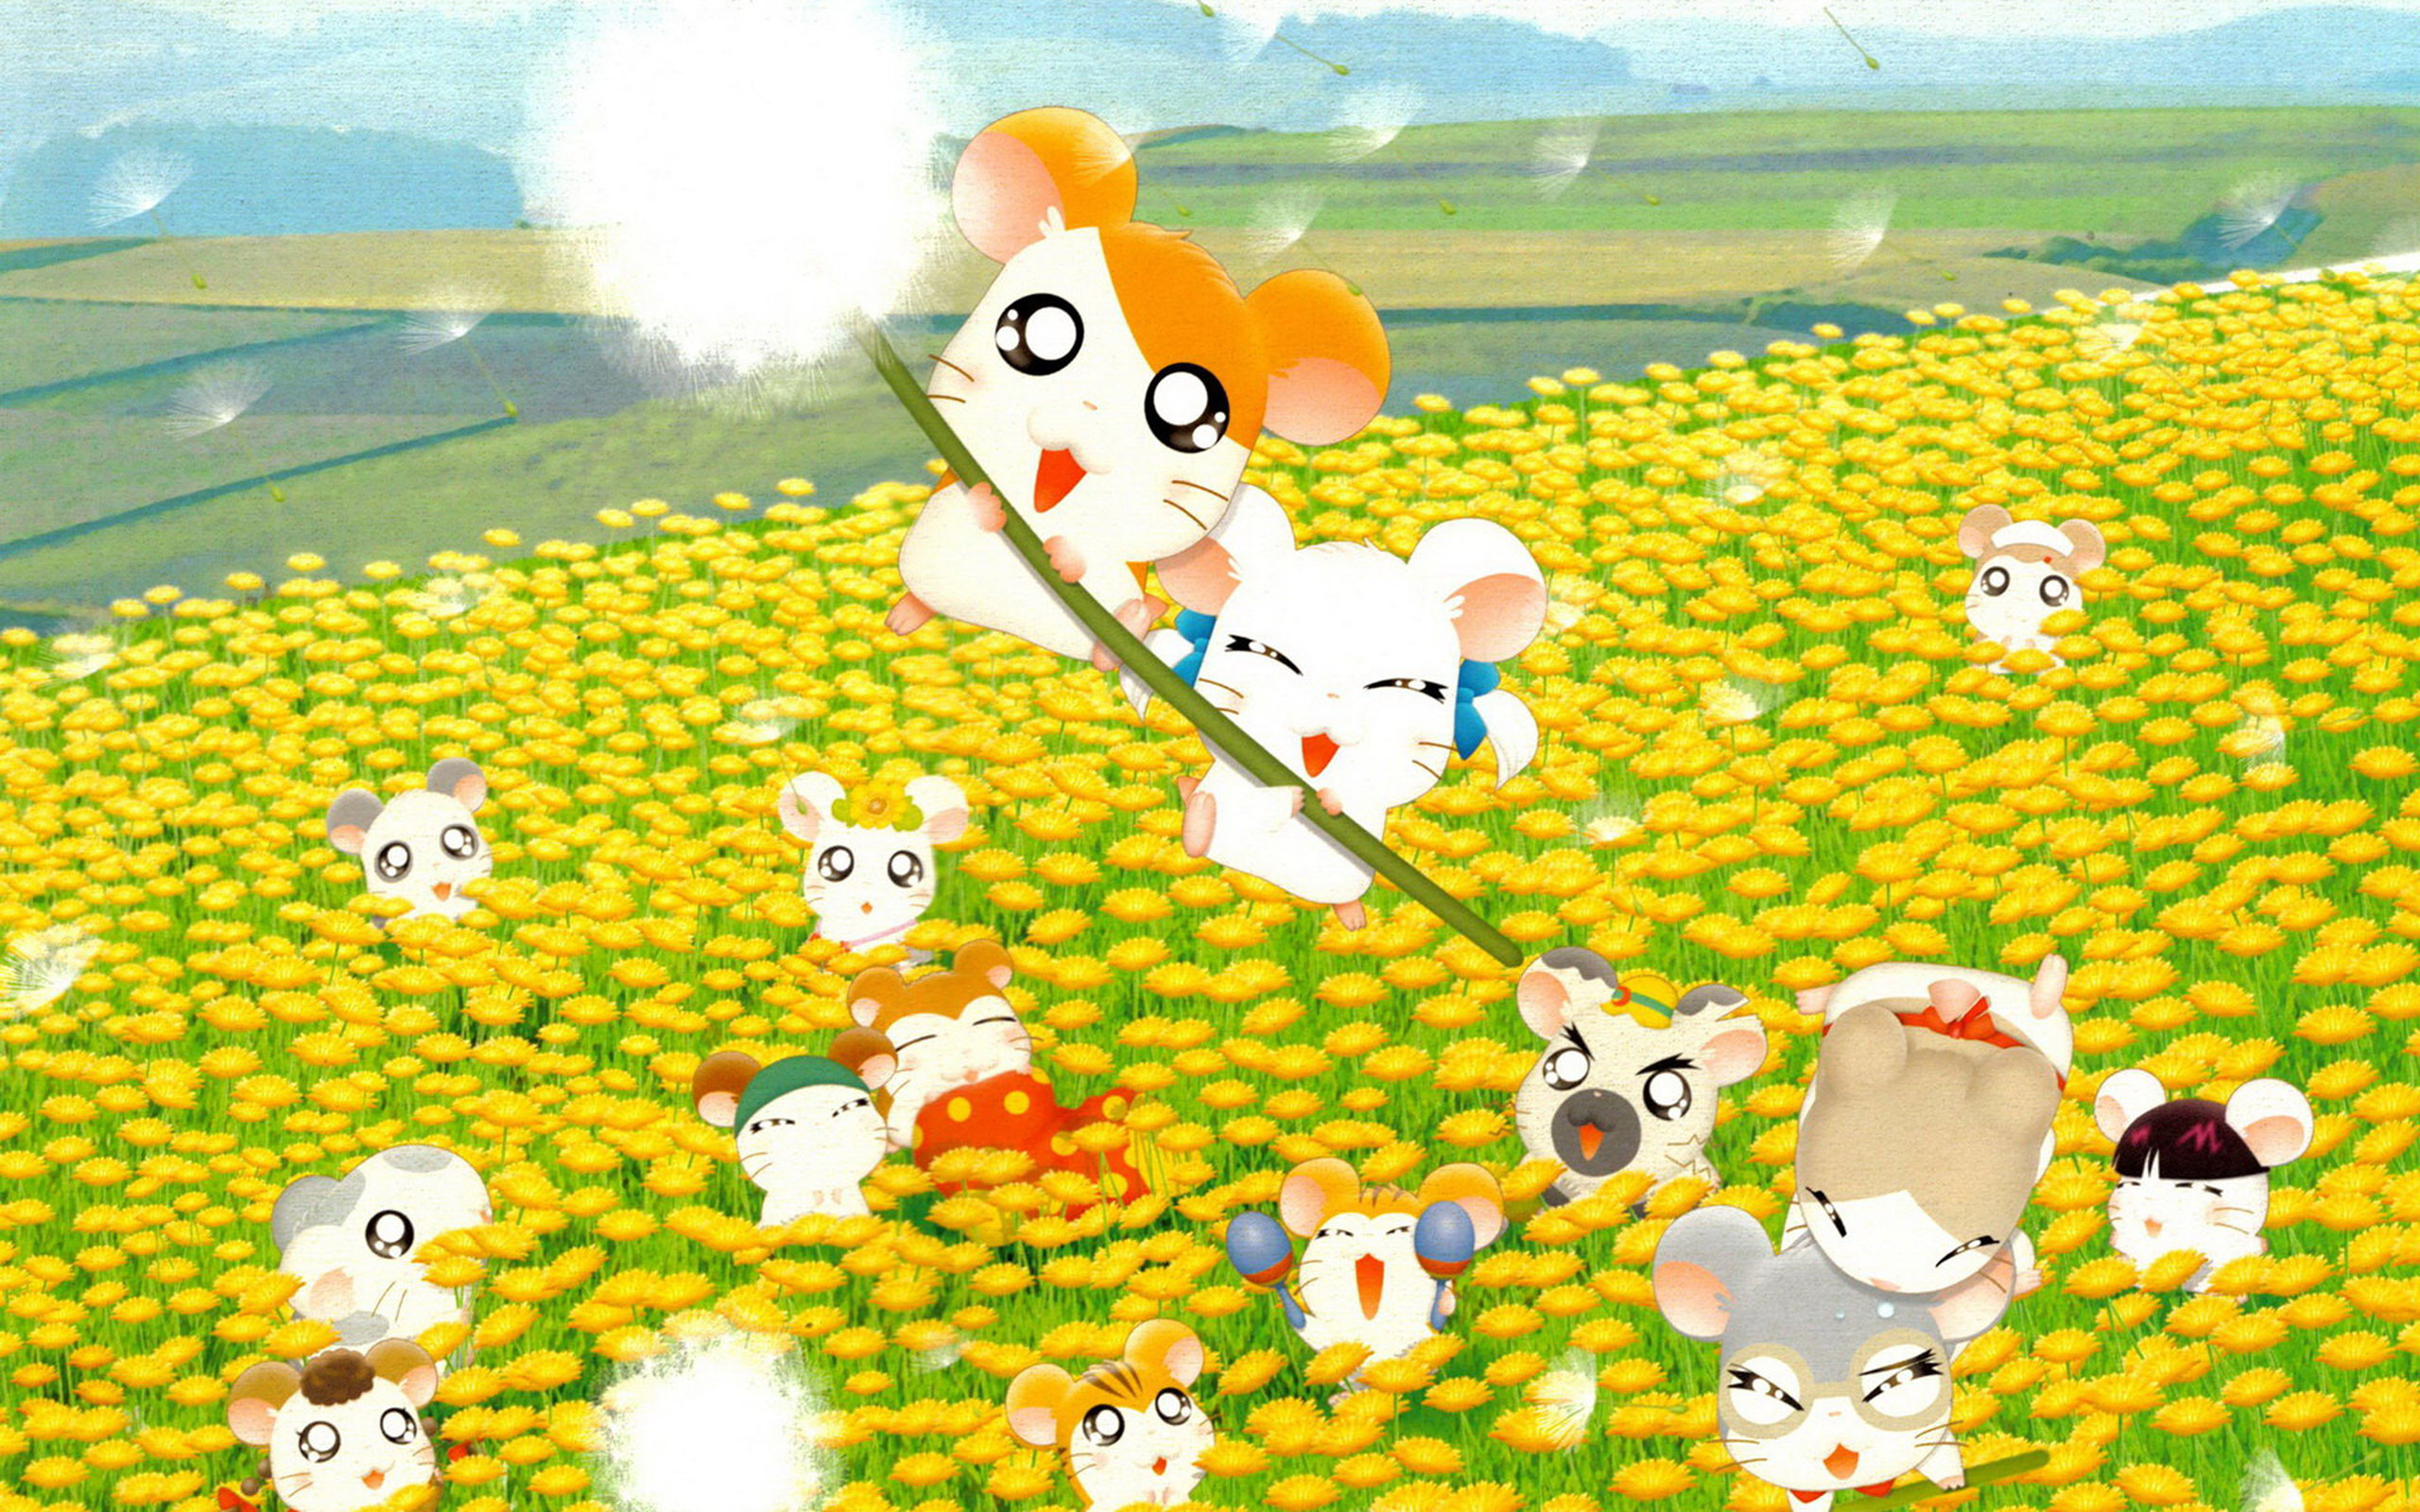 2560x1600 - Hamtaro Background 2